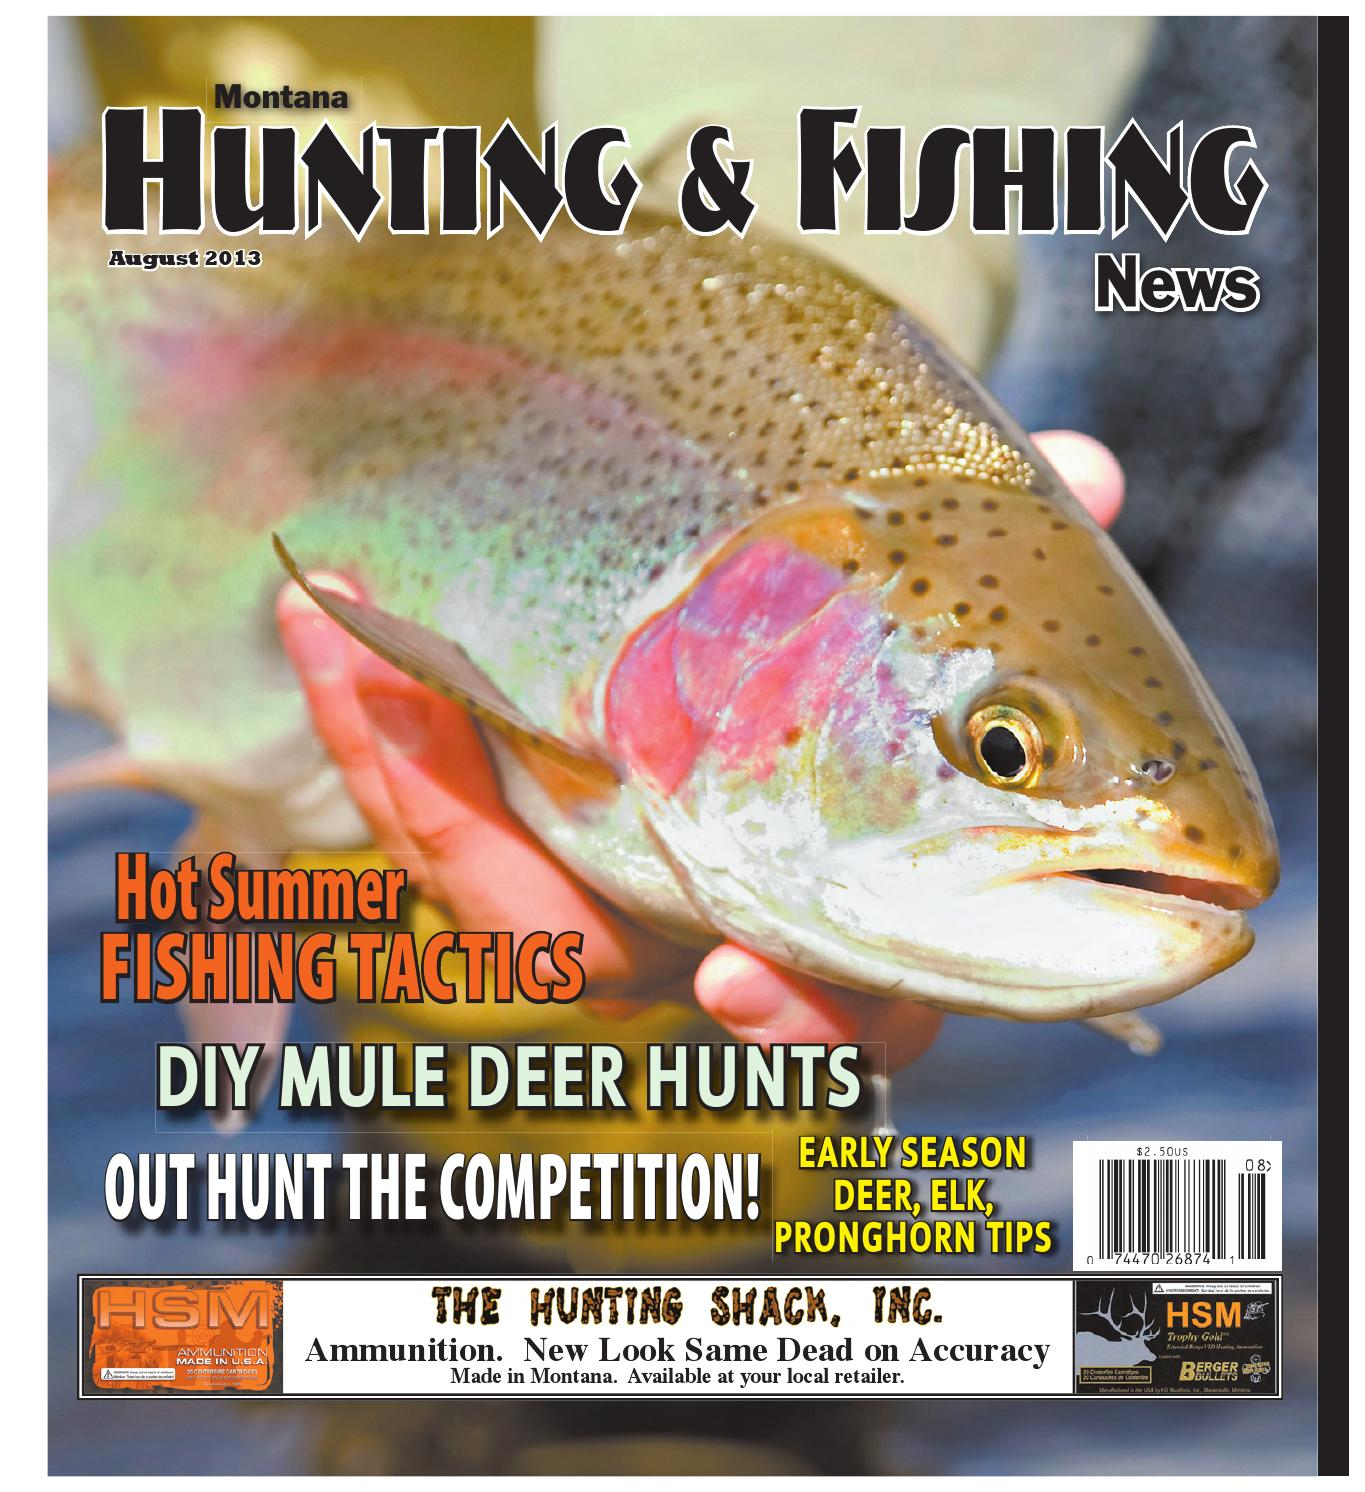 Hunting Fishing News August 2013 By Amy Haggerty Issuu Bypass The Thermal Switch Yamaha Grizzly Atv Forum